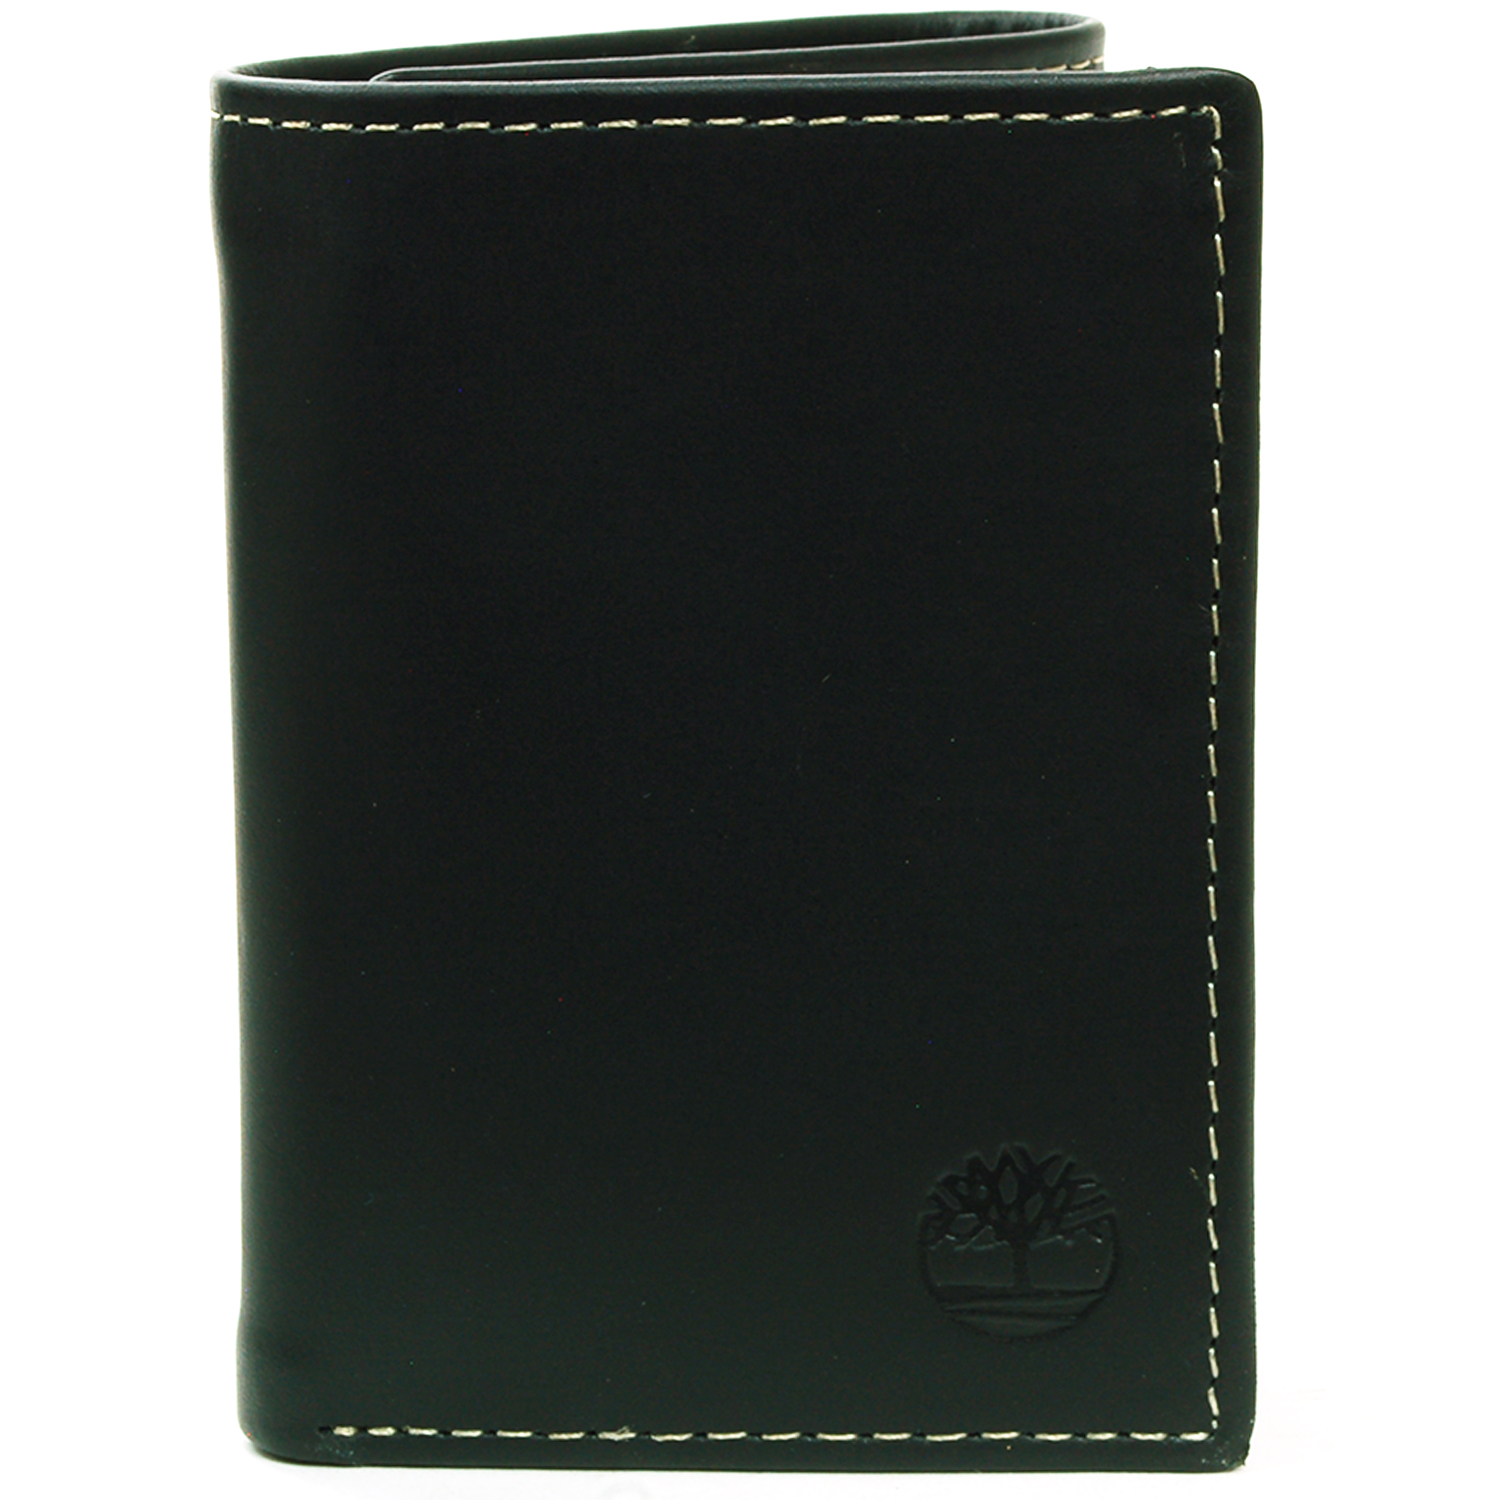 newest b42f0 394e5 Details about Timberland Men's Trifold Wallet Soft Genuine Leather Slim  Billfold ID Card Case